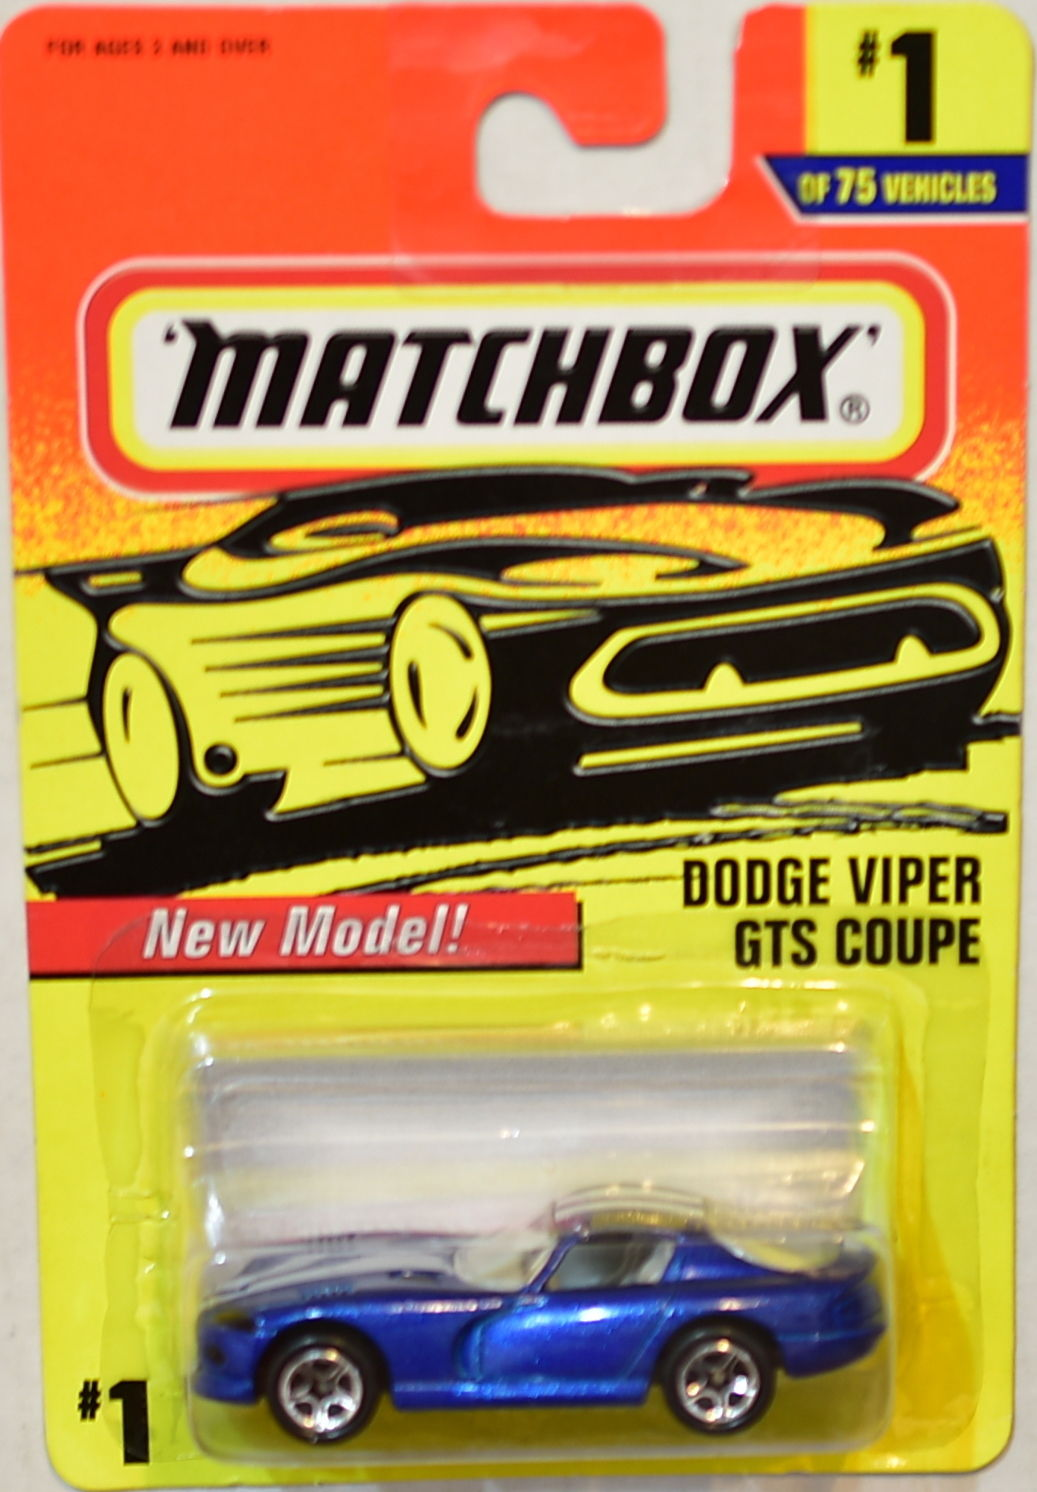 MATCHBOX 1997 DODGE VIPER GTS COUPE NEW MODEL #1/75 E+